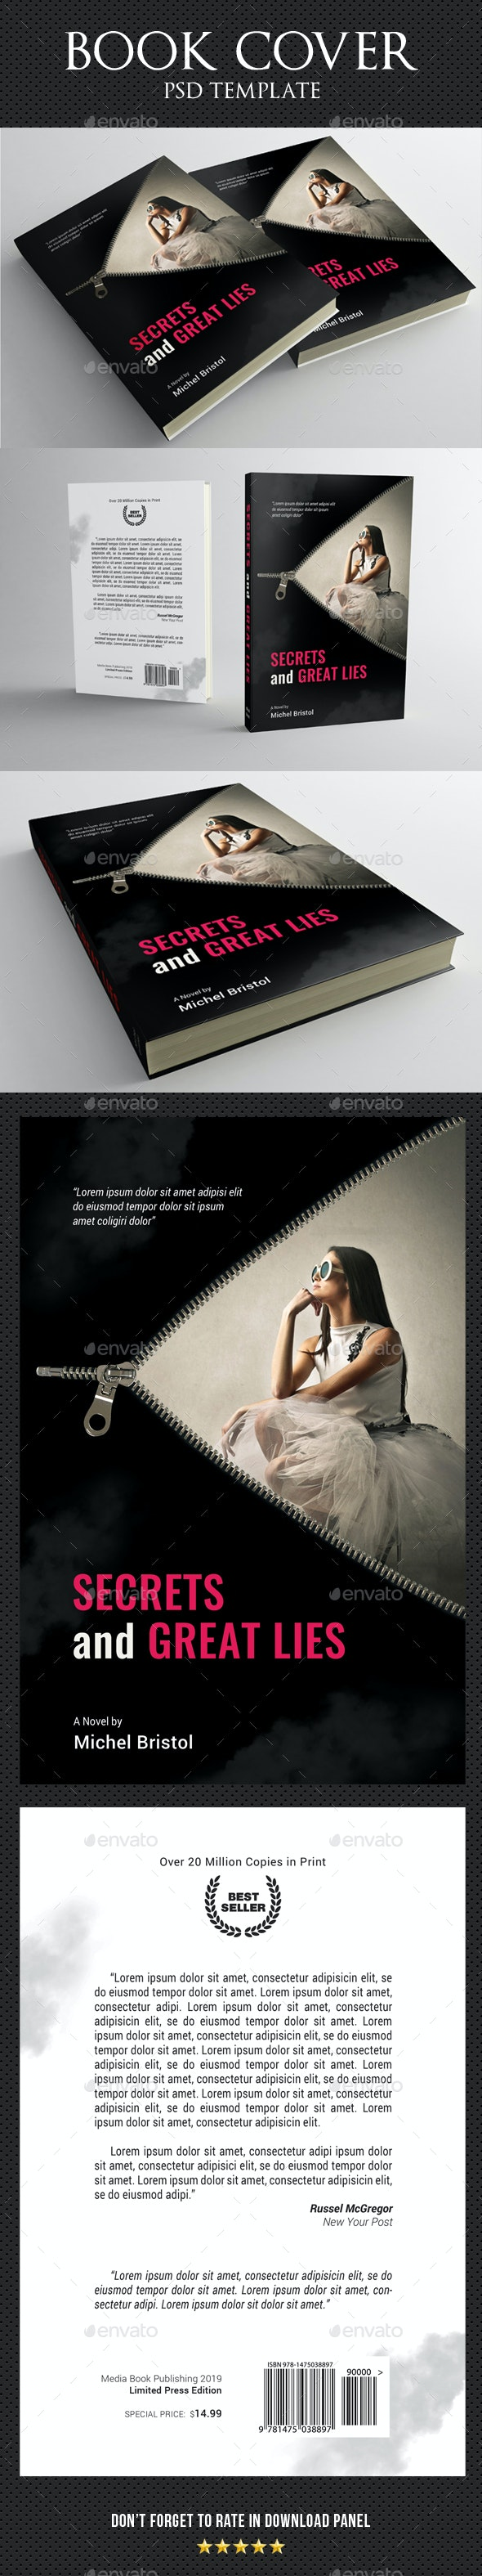 Book Cover Template 77 - Miscellaneous Print Templates